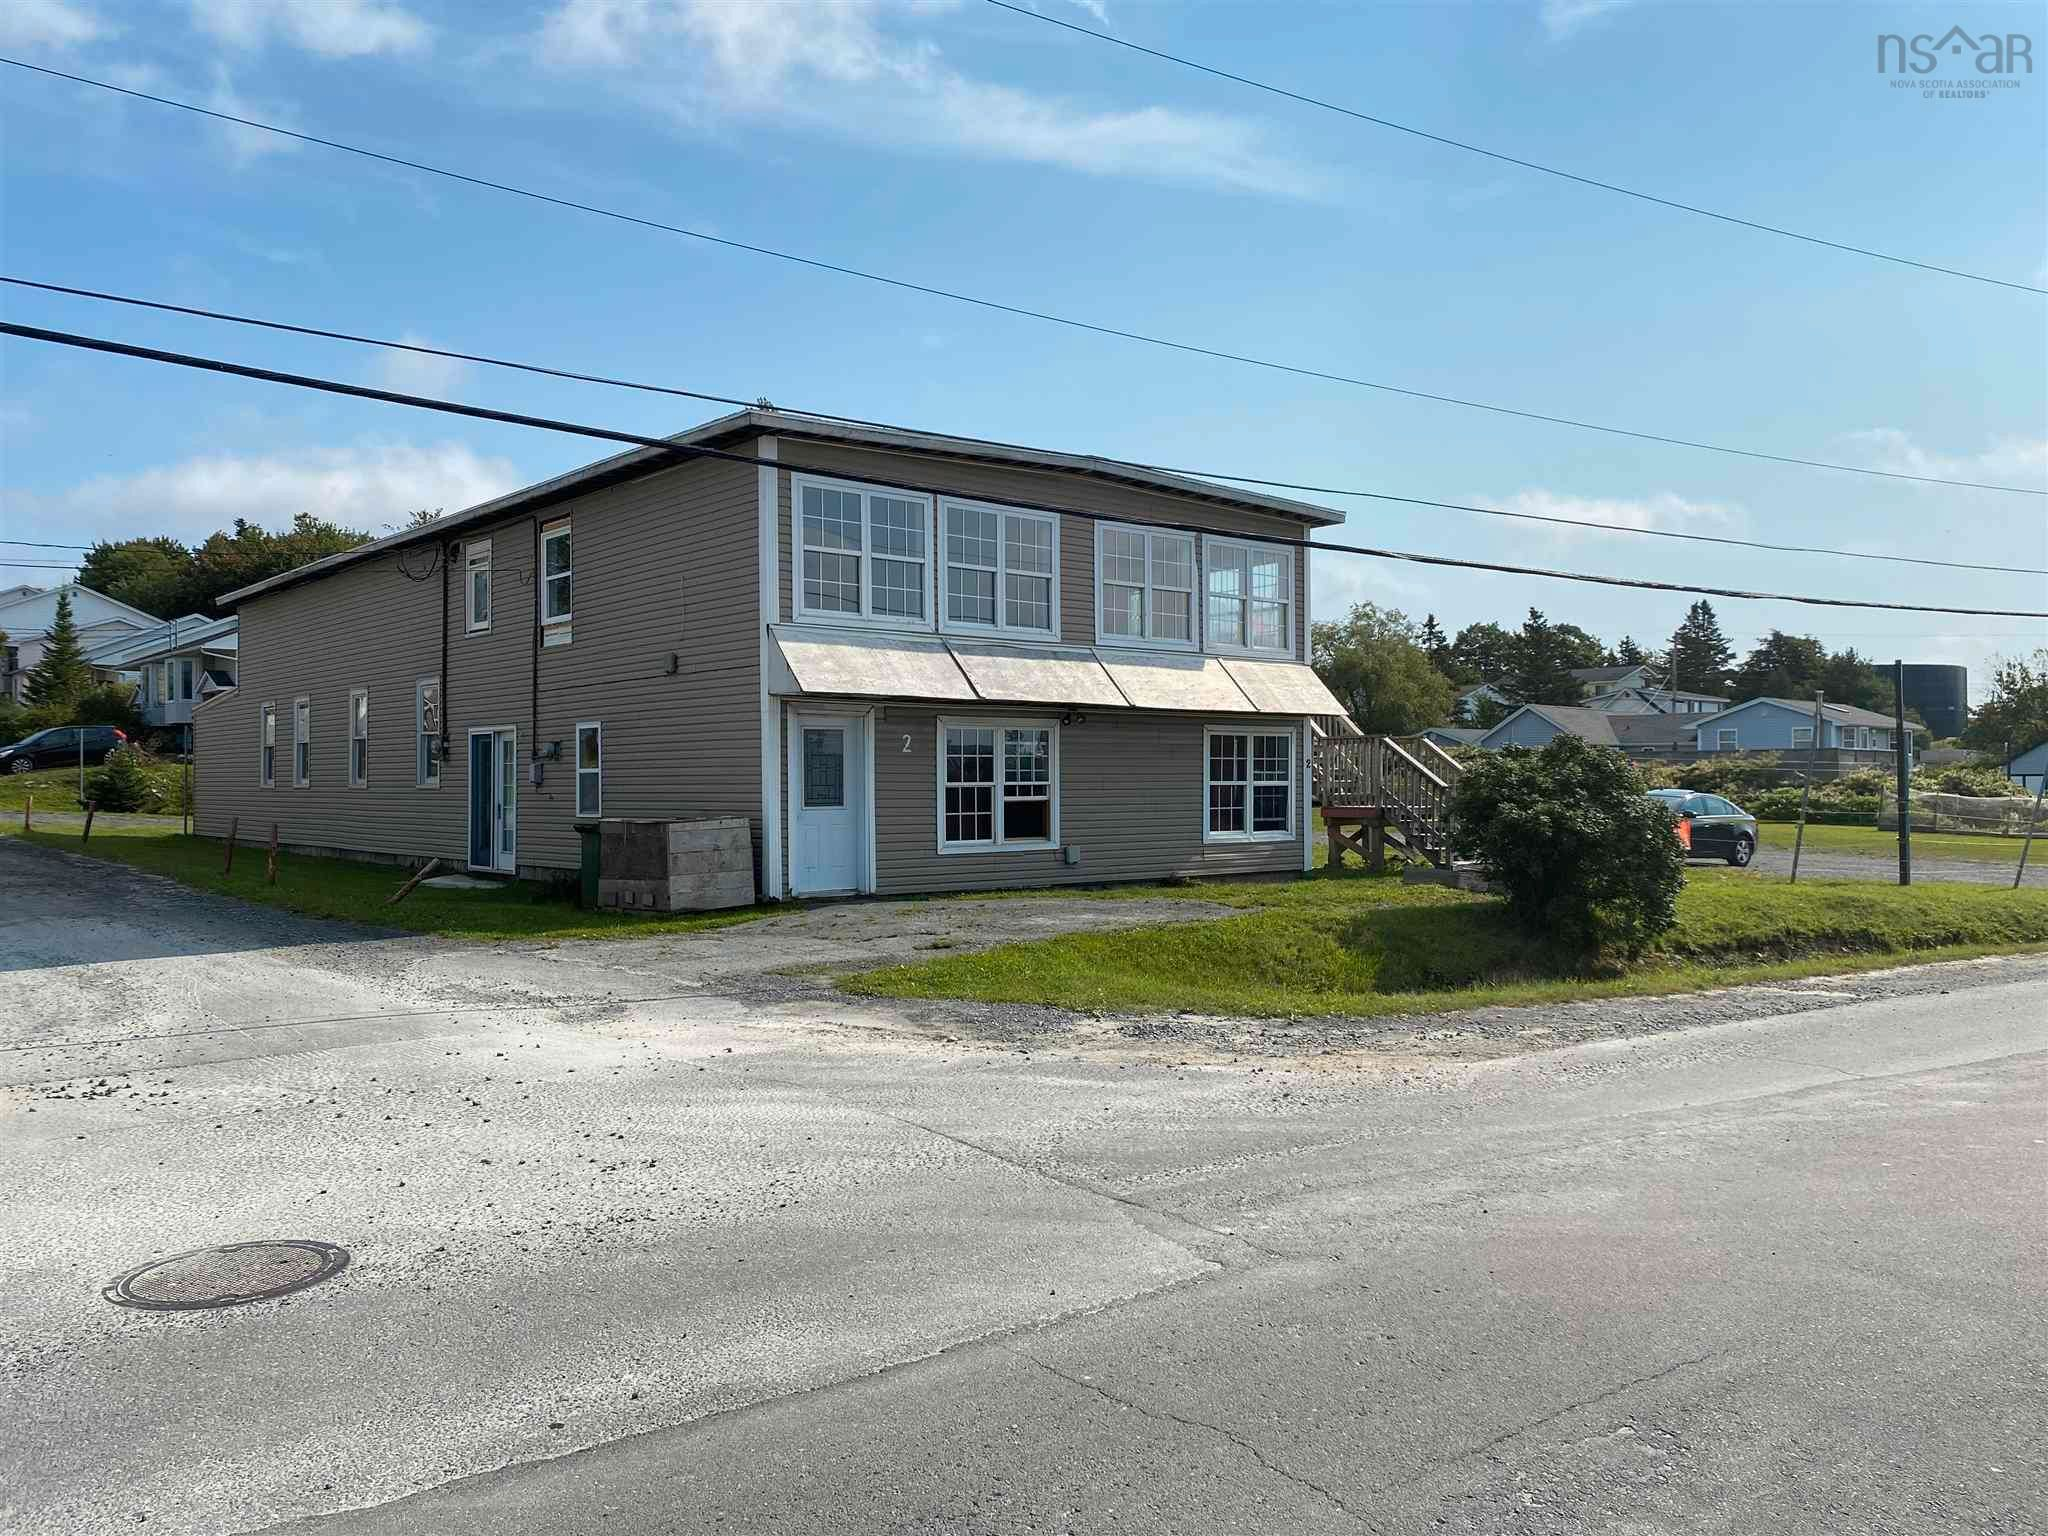 Main Photo: 2 Autoport Avenue in Eastern Passage: 11-Dartmouth Woodside, Eastern Passage, Cow Bay Multi-Family for sale (Halifax-Dartmouth)  : MLS®# 202123562